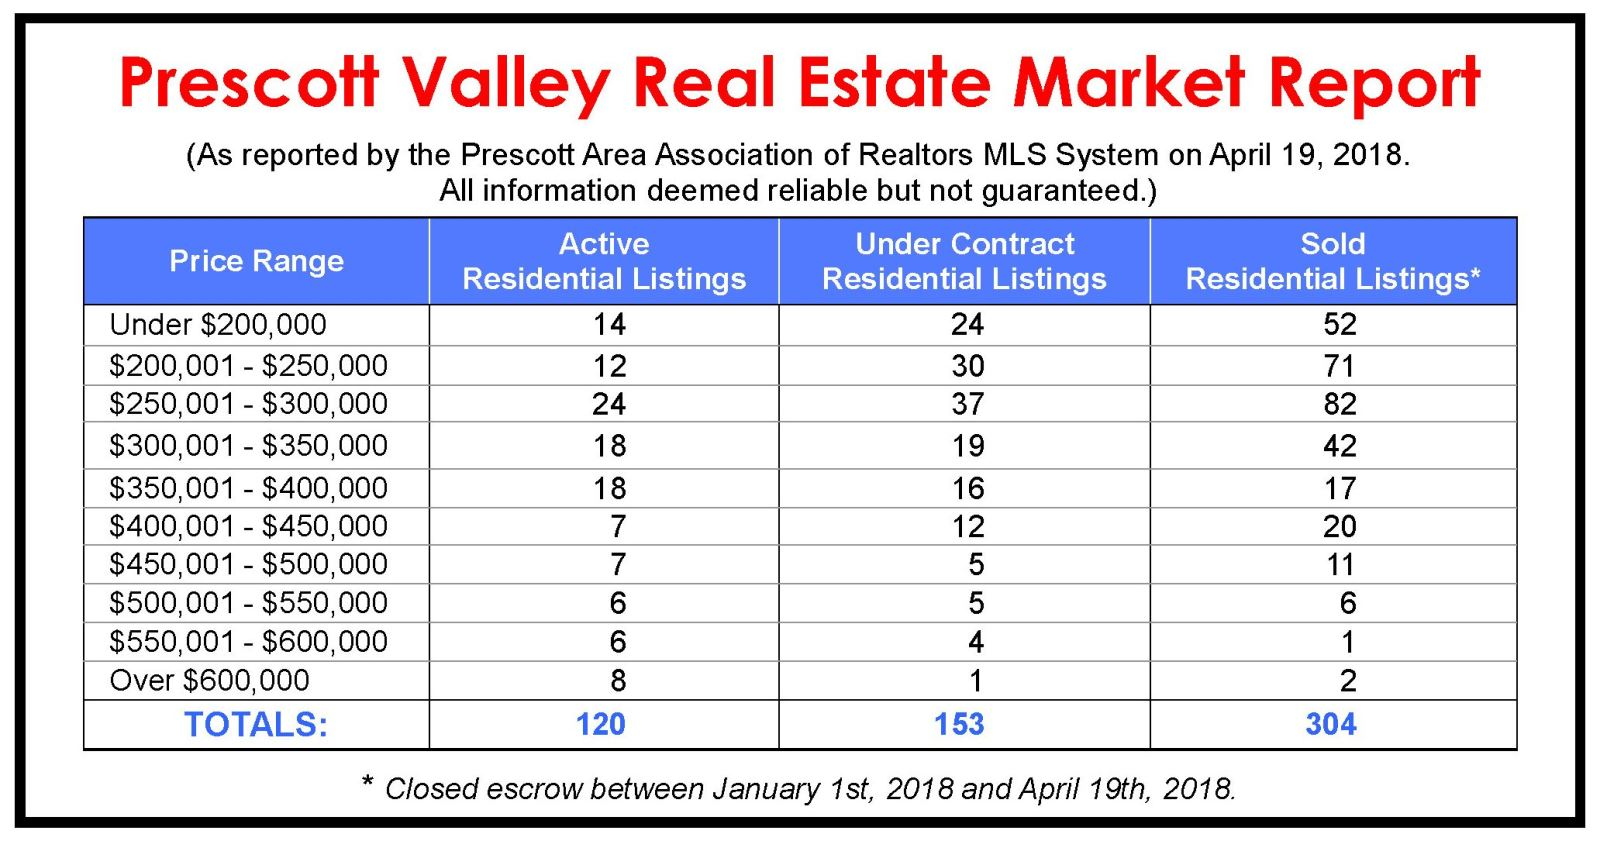 Prescott Valley Market Update